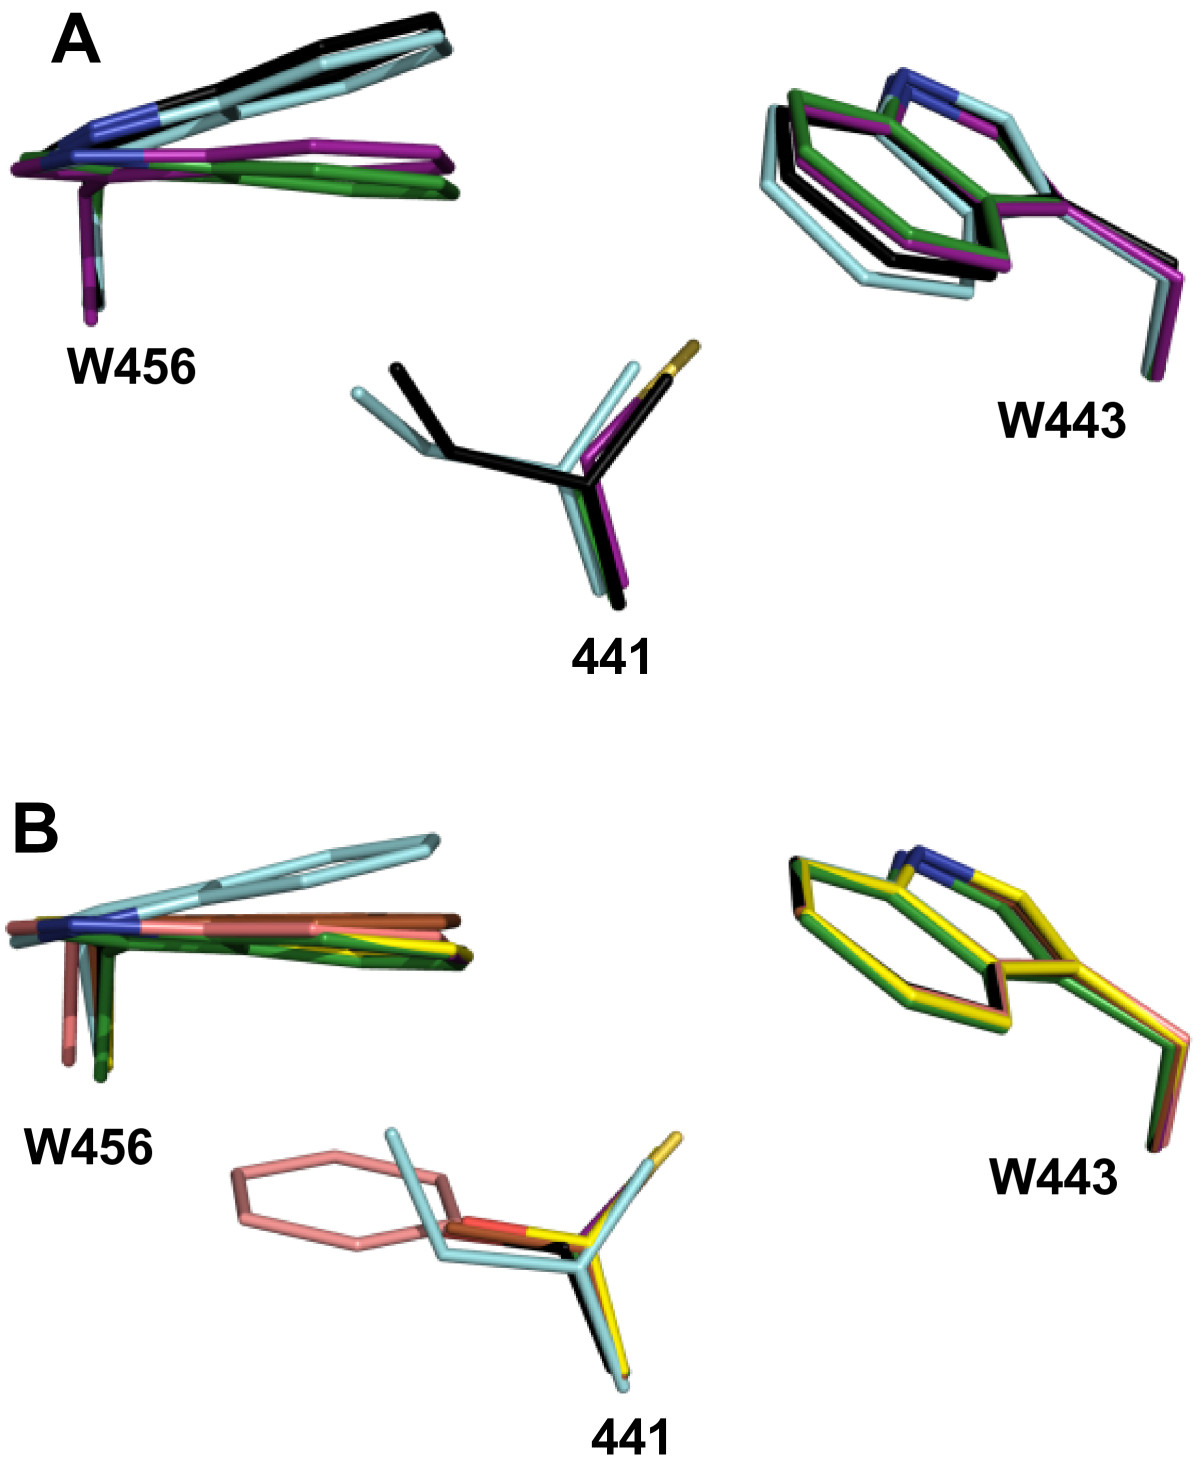 https://static-content.springer.com/image/art%3A10.1186%2F1471-2229-14-149/MediaObjects/12870_2014_Article_1546_Fig5_HTML.jpg